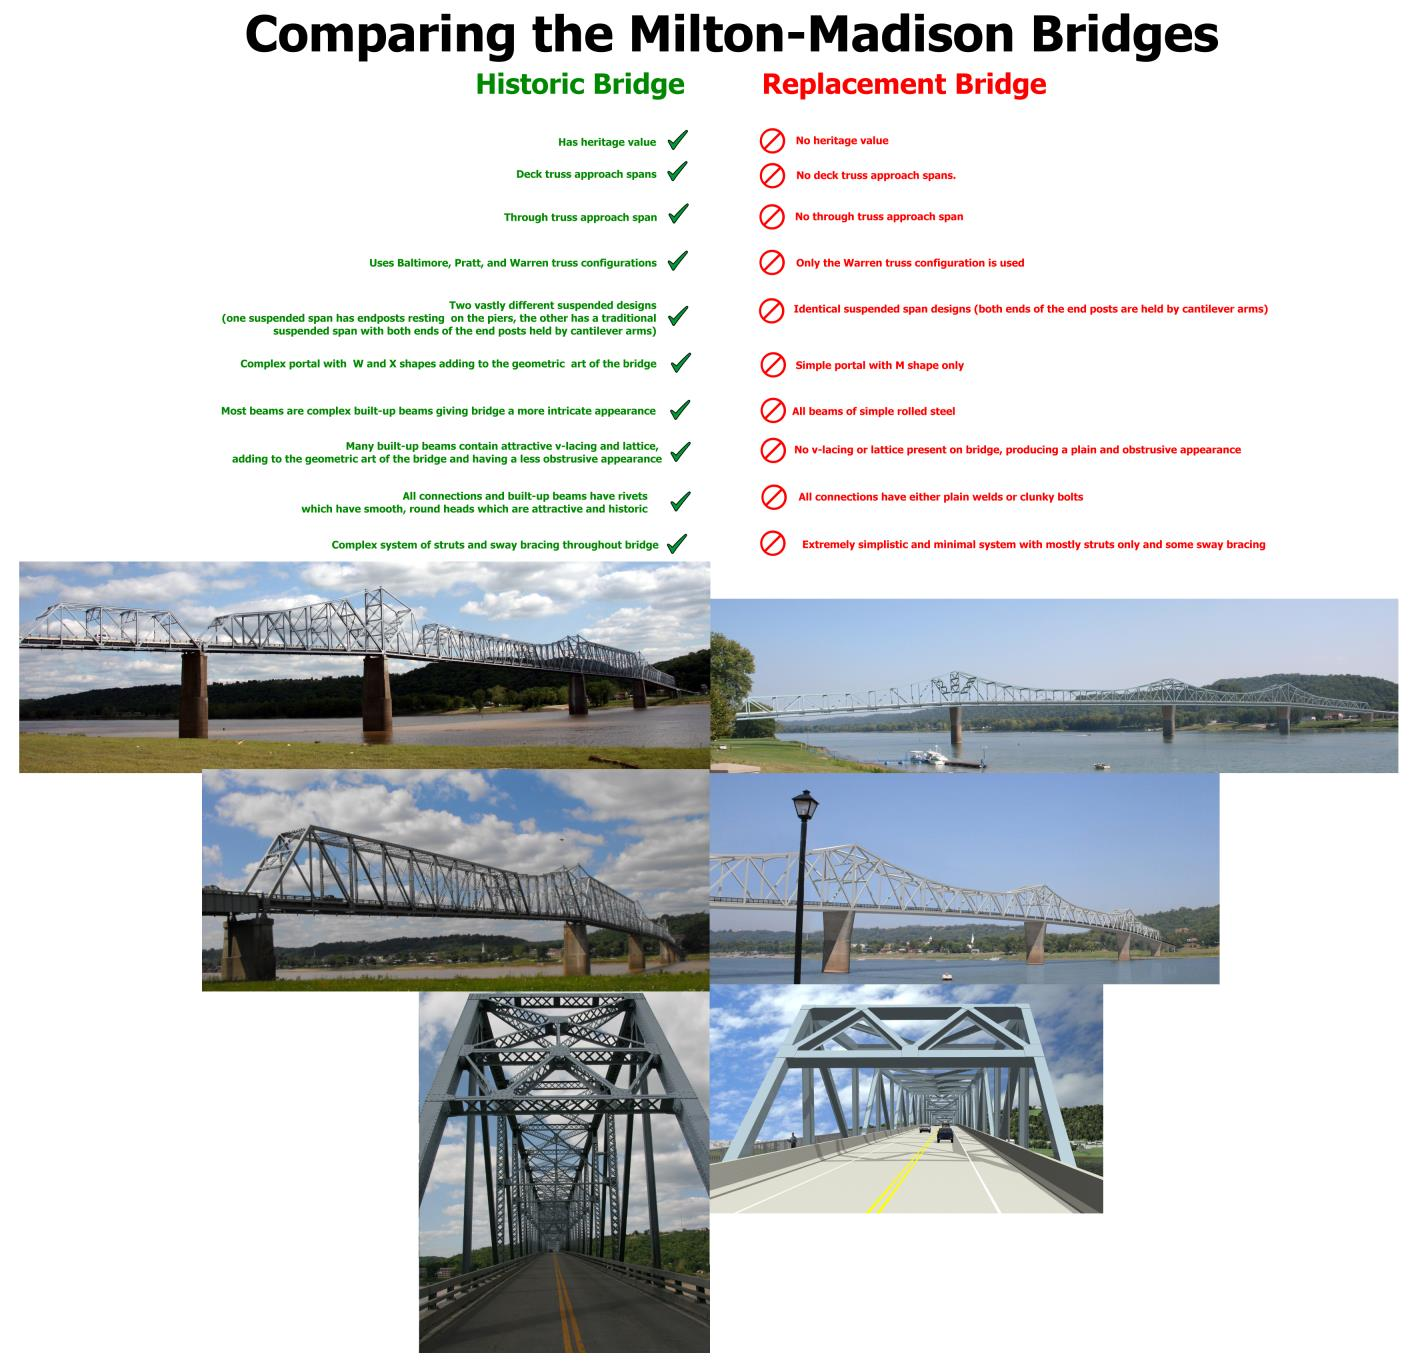 Milton Madison Bridge Truss Diagram Elevation Save The Design Of Proposed Replacement Project Is A Disappointment Surpassed Only By Failure To Preserve Historic